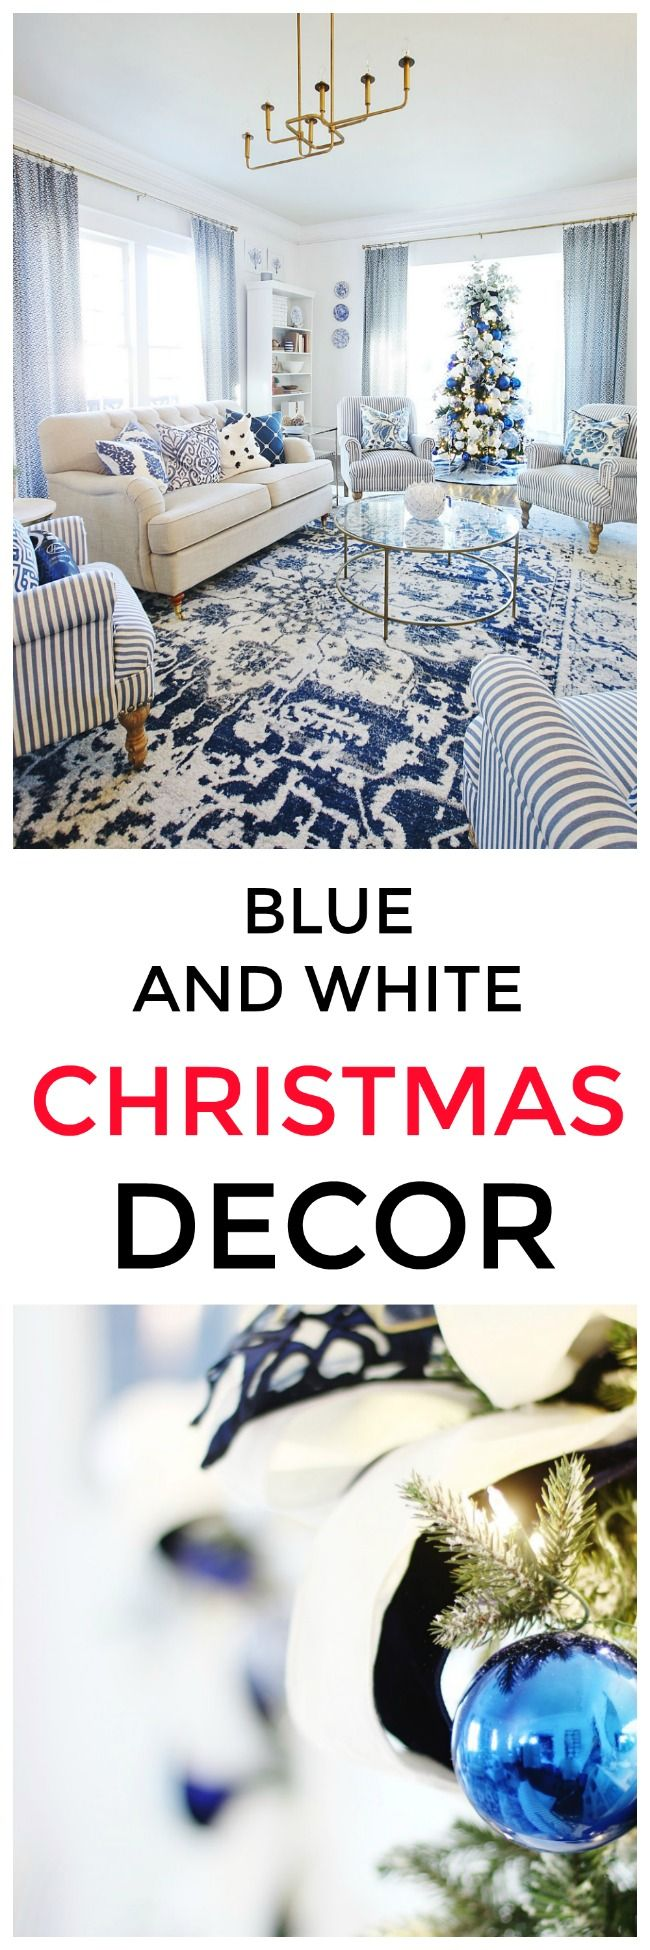 Getting a Blue and White Living Room Ready for Christmas (and a GIVEAWAY) - Thistlewood Farm